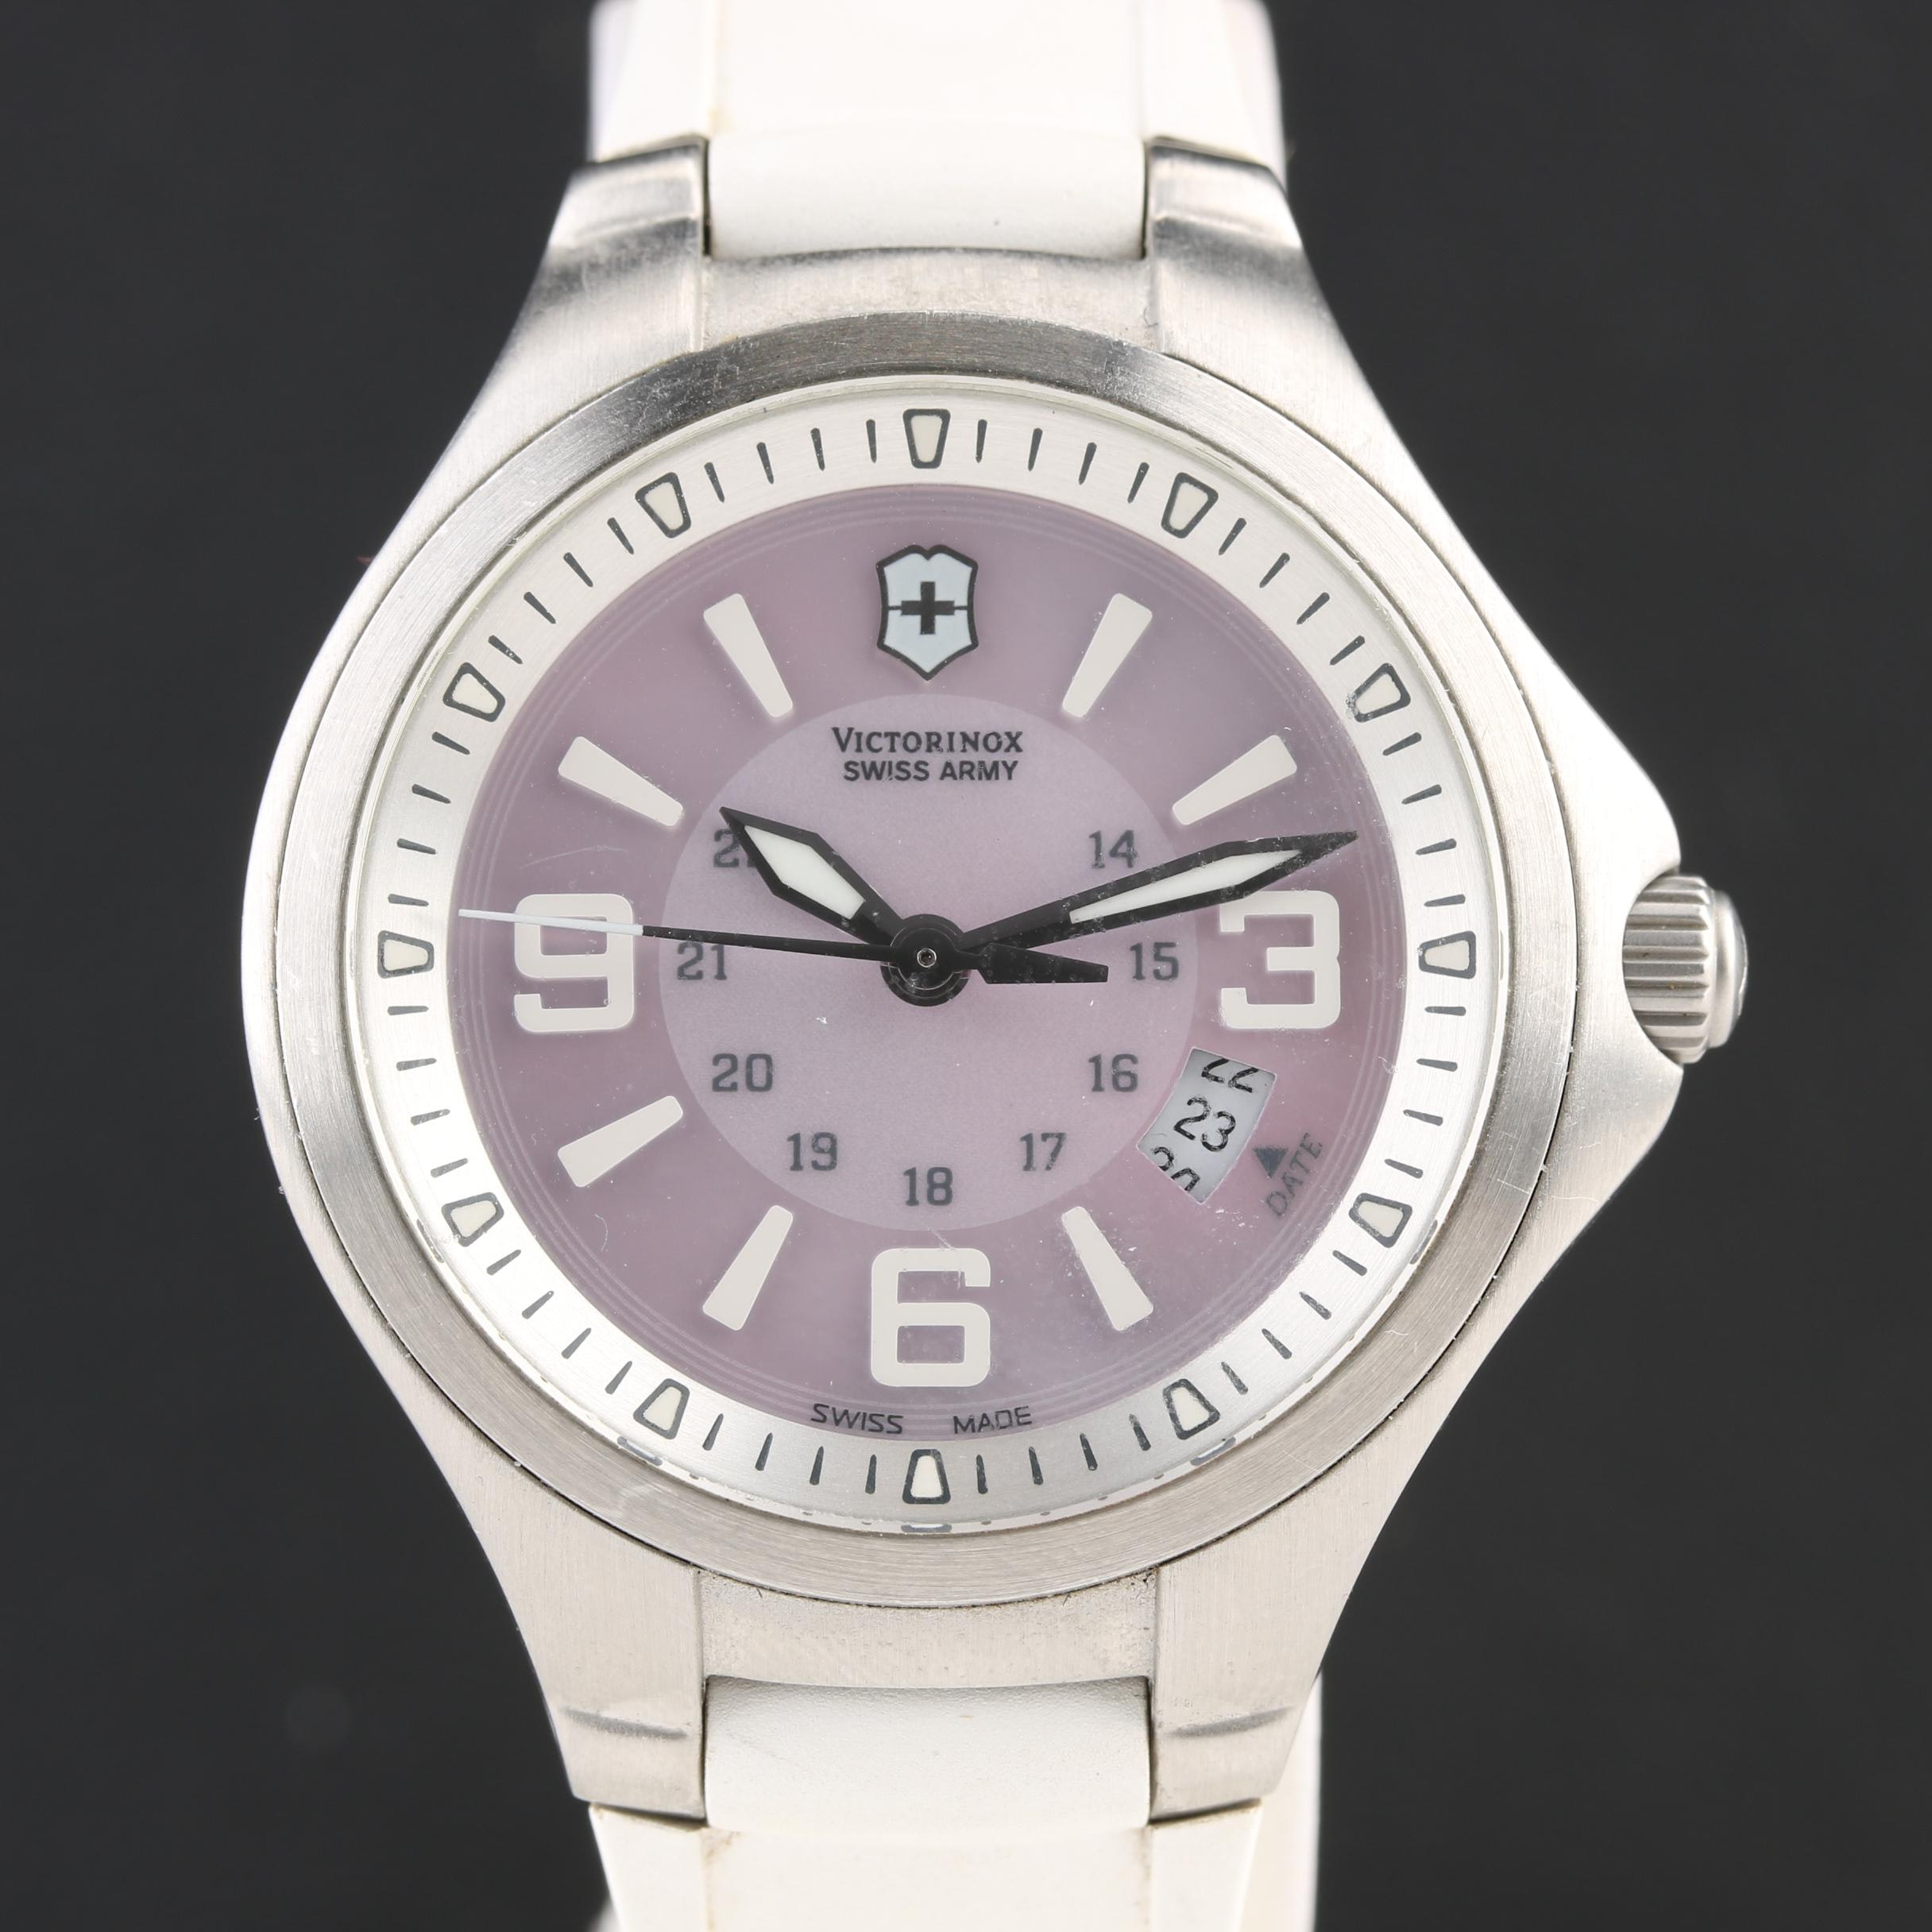 Victorinox Swiss Army Mother of Pearl Dial Wristwatch With Date Window